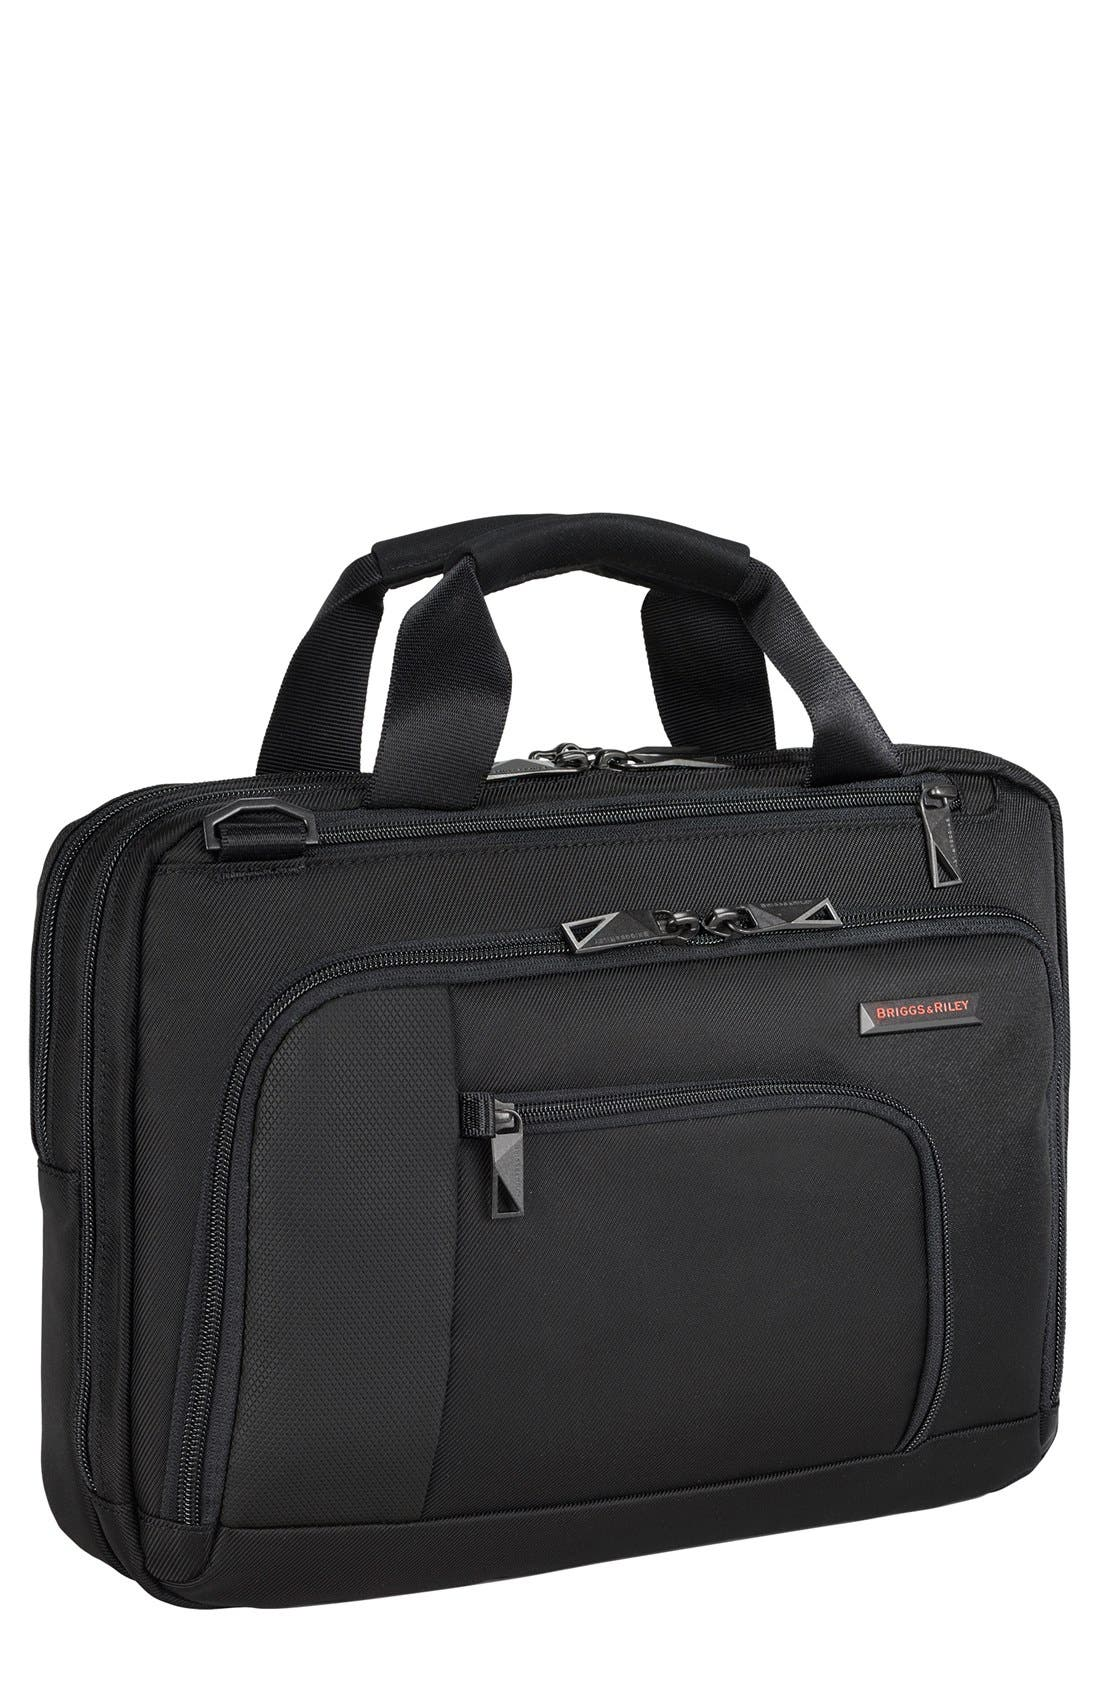 BRIGGS & RILEY 'Verb - Contact' Small Briefcase